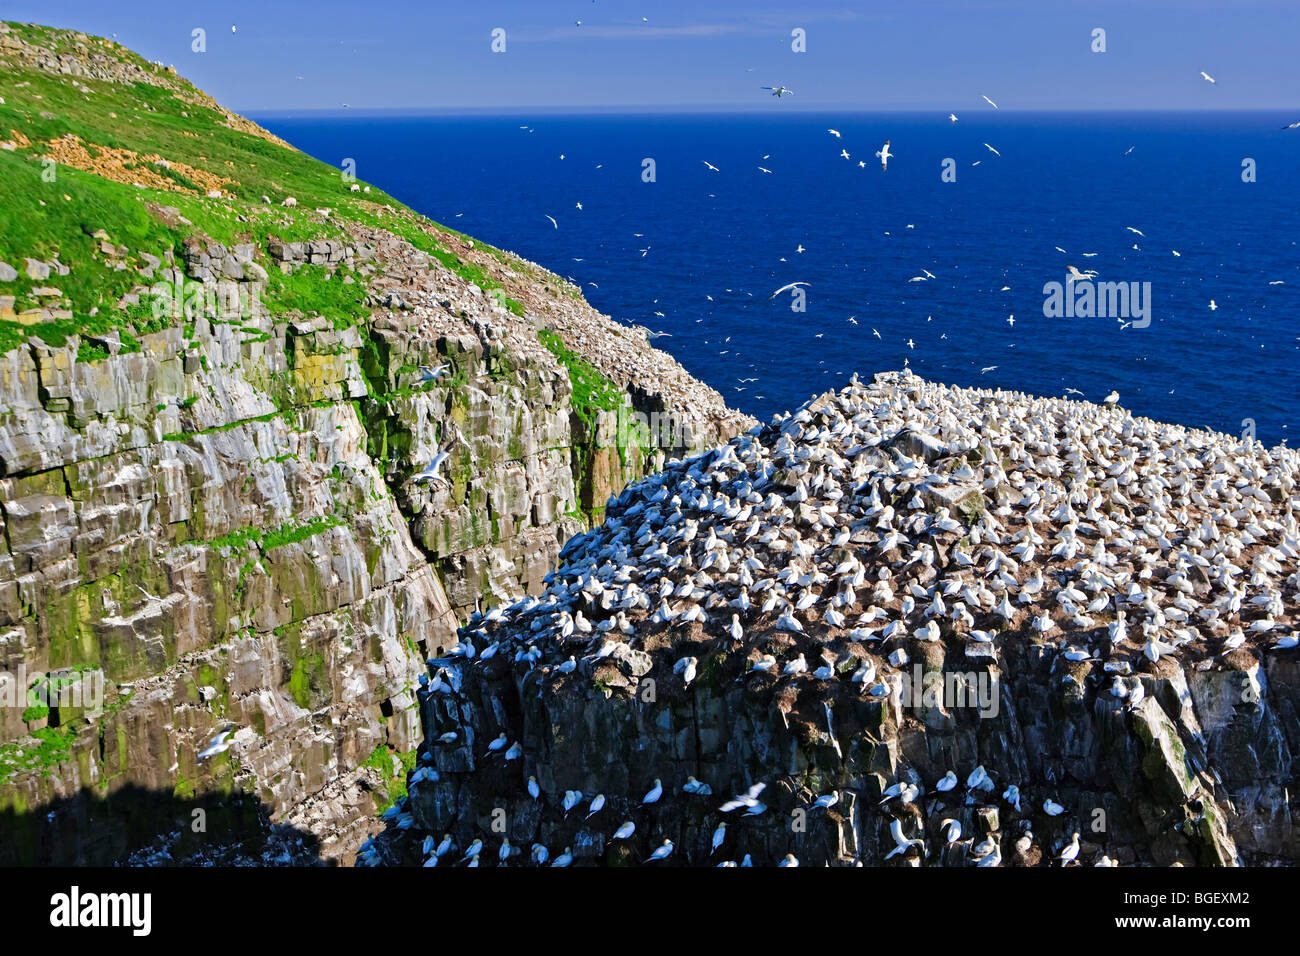 Northern Gannets, Morus bassanus, nesting on Bird Rock at the Cape St Mary's Ecological Reserve, Cape St Mary's, Stock Photo